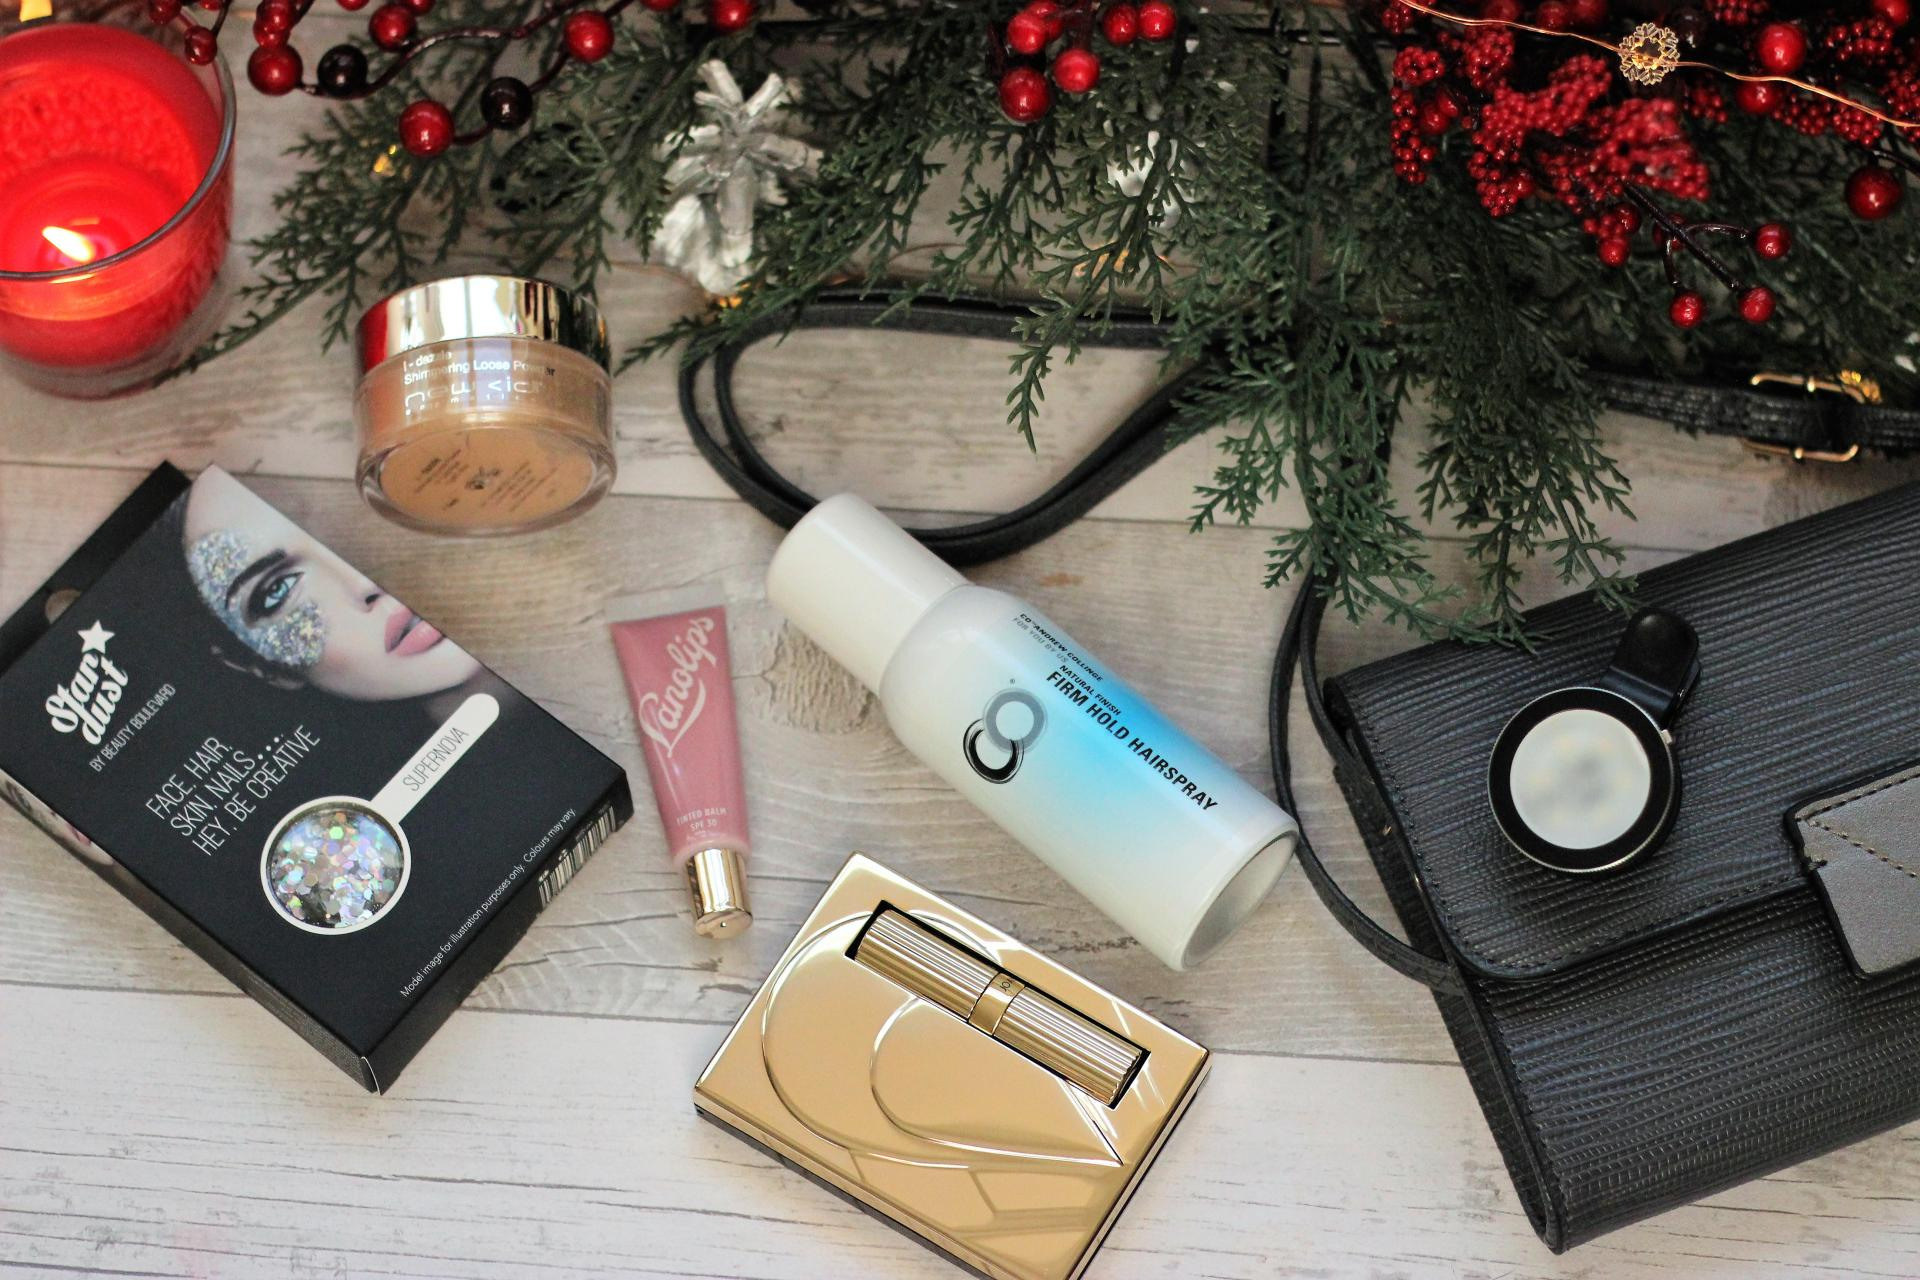 What's In My Bag - New Years Eve Special